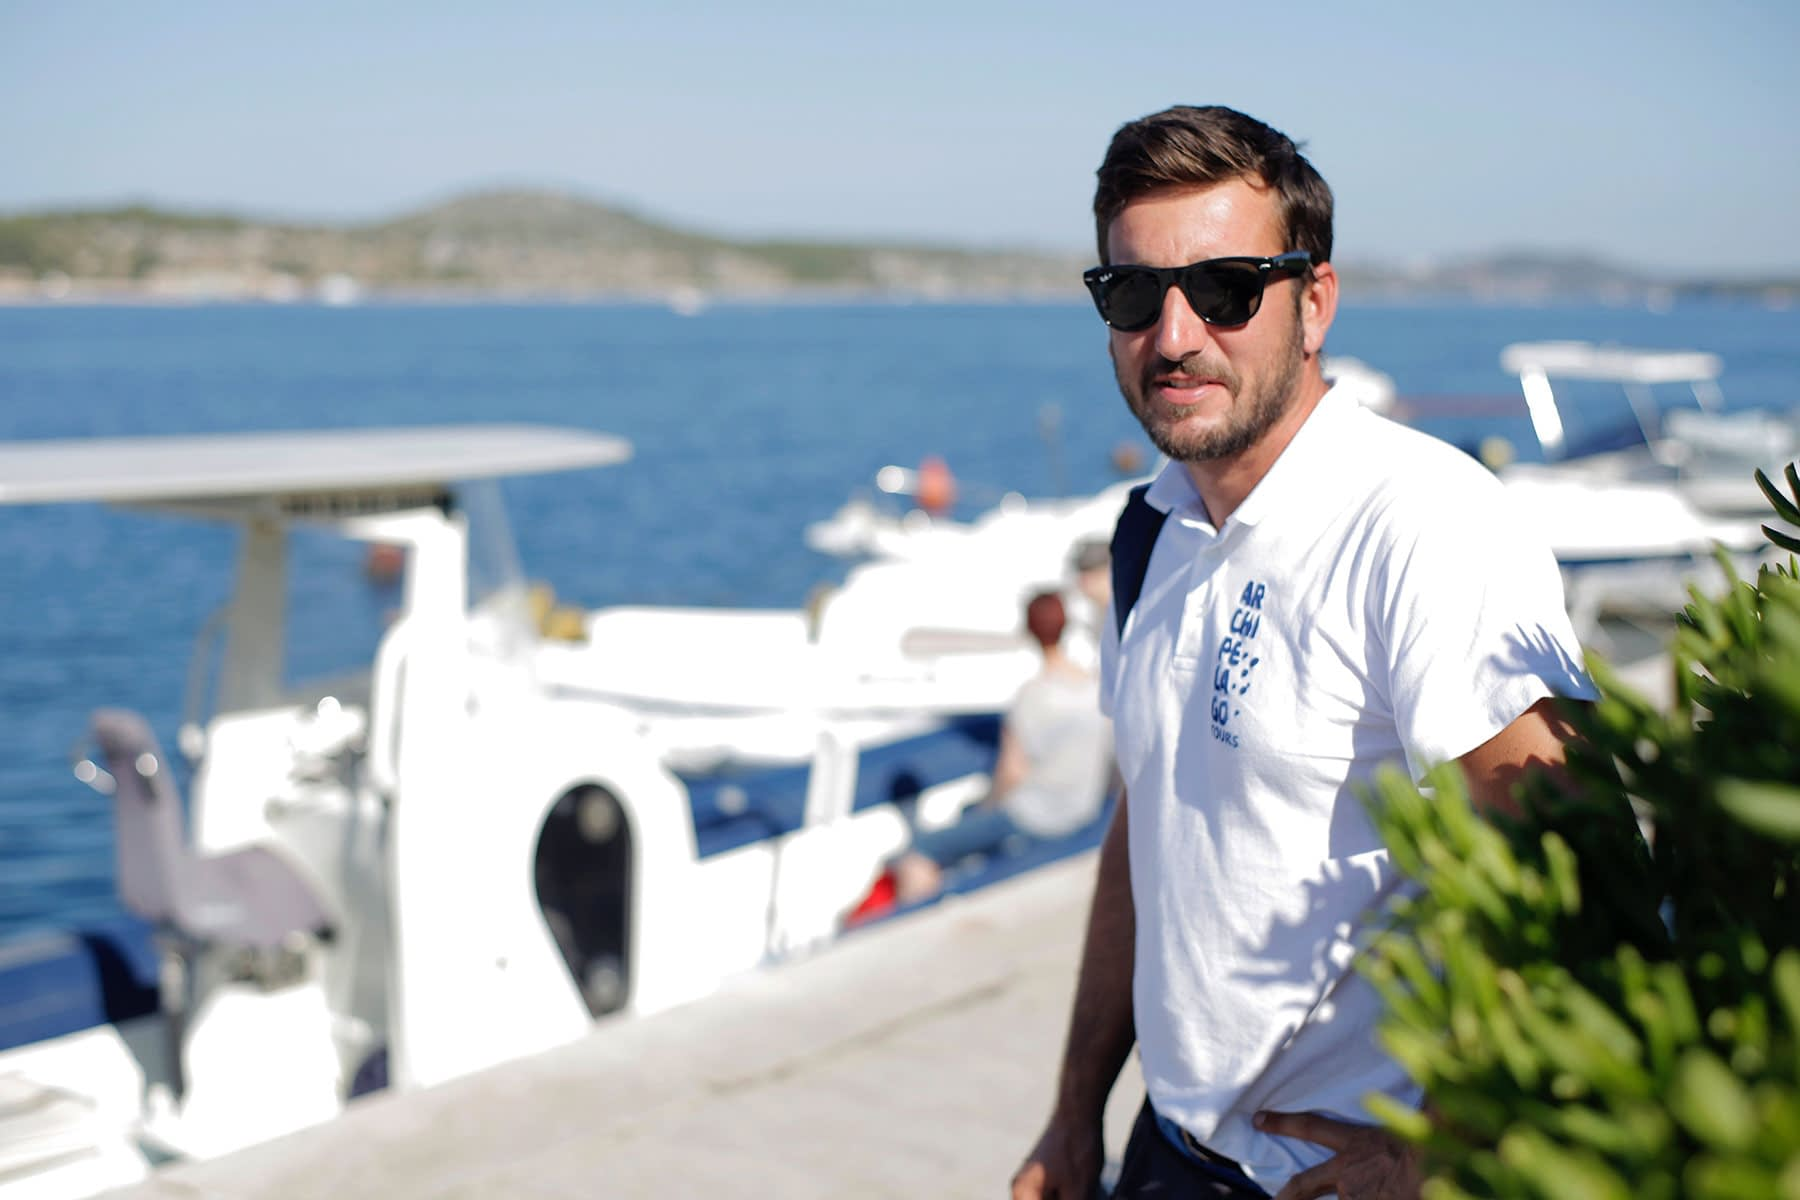 Work with Archipelago Tours as boat tour guides